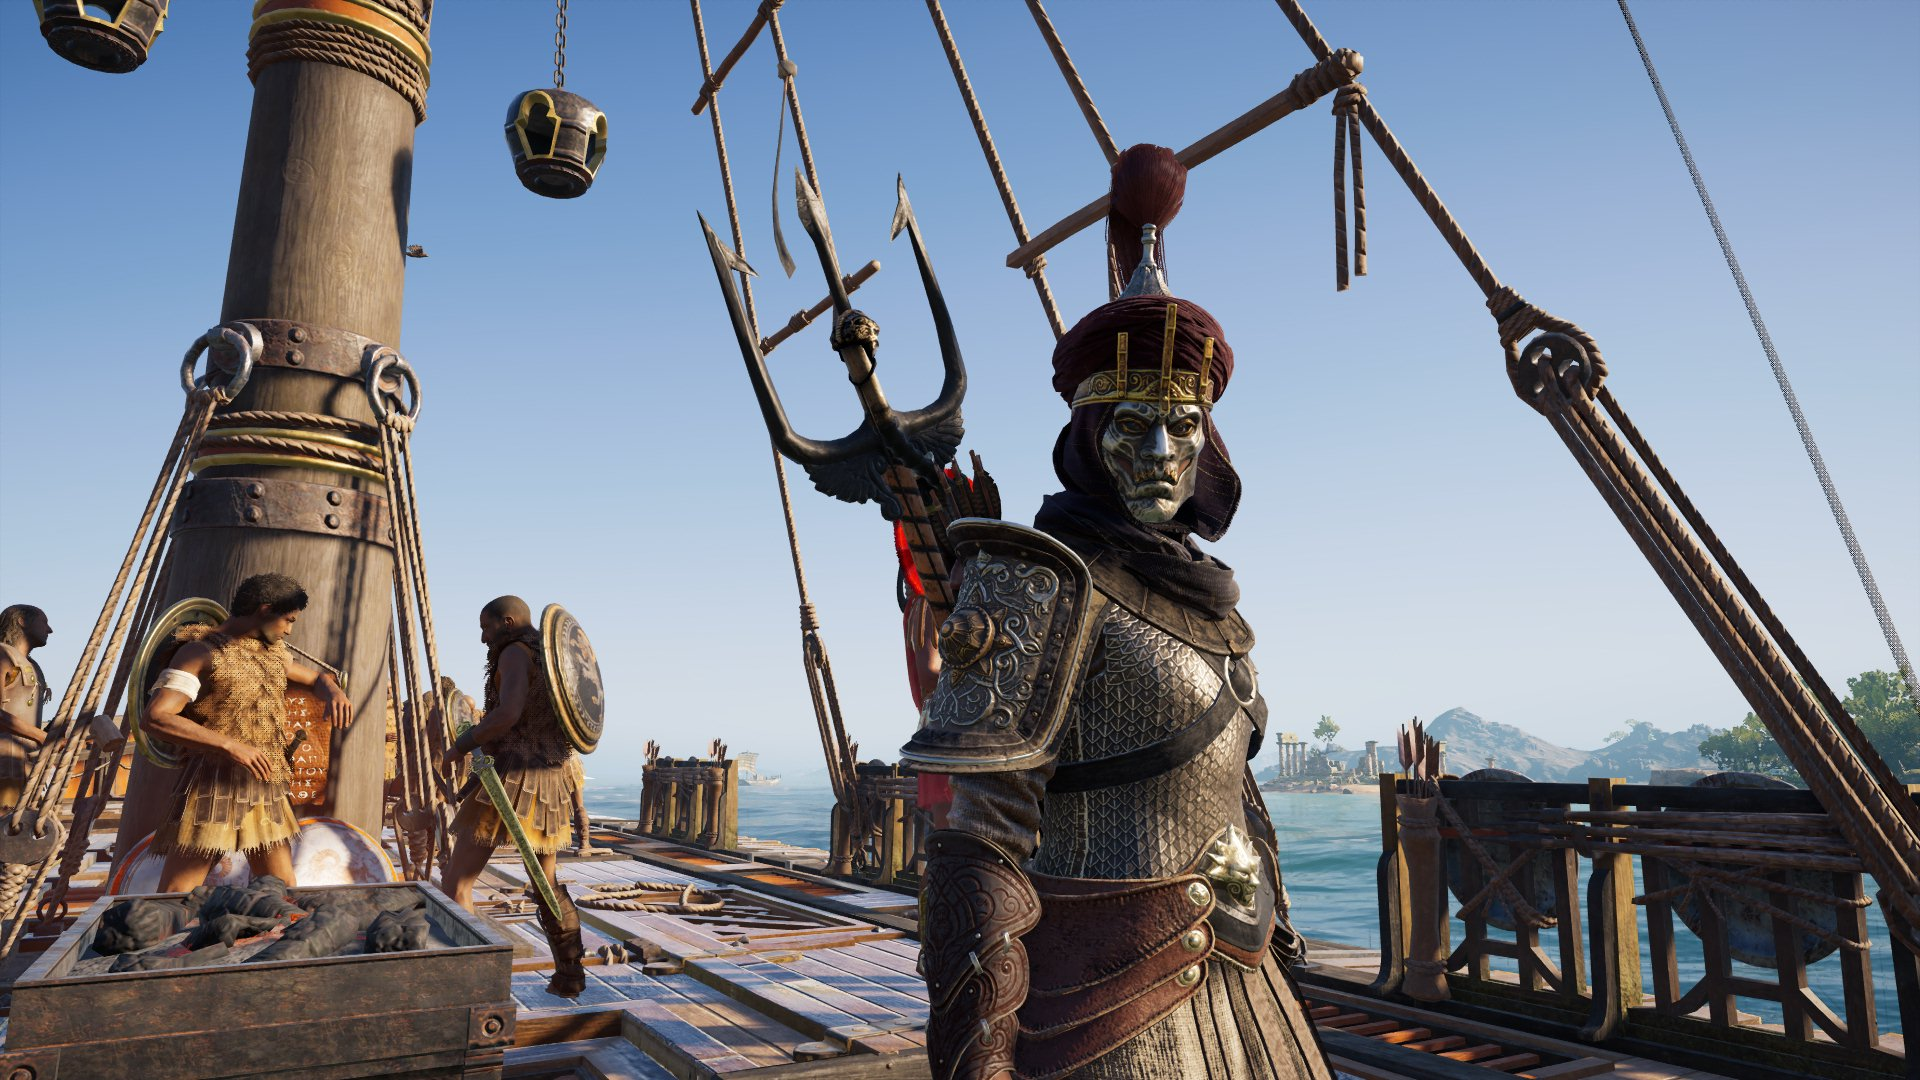 What The Malakas? Six Things I Wish I Knew About Assassin's Creed: Odyssey